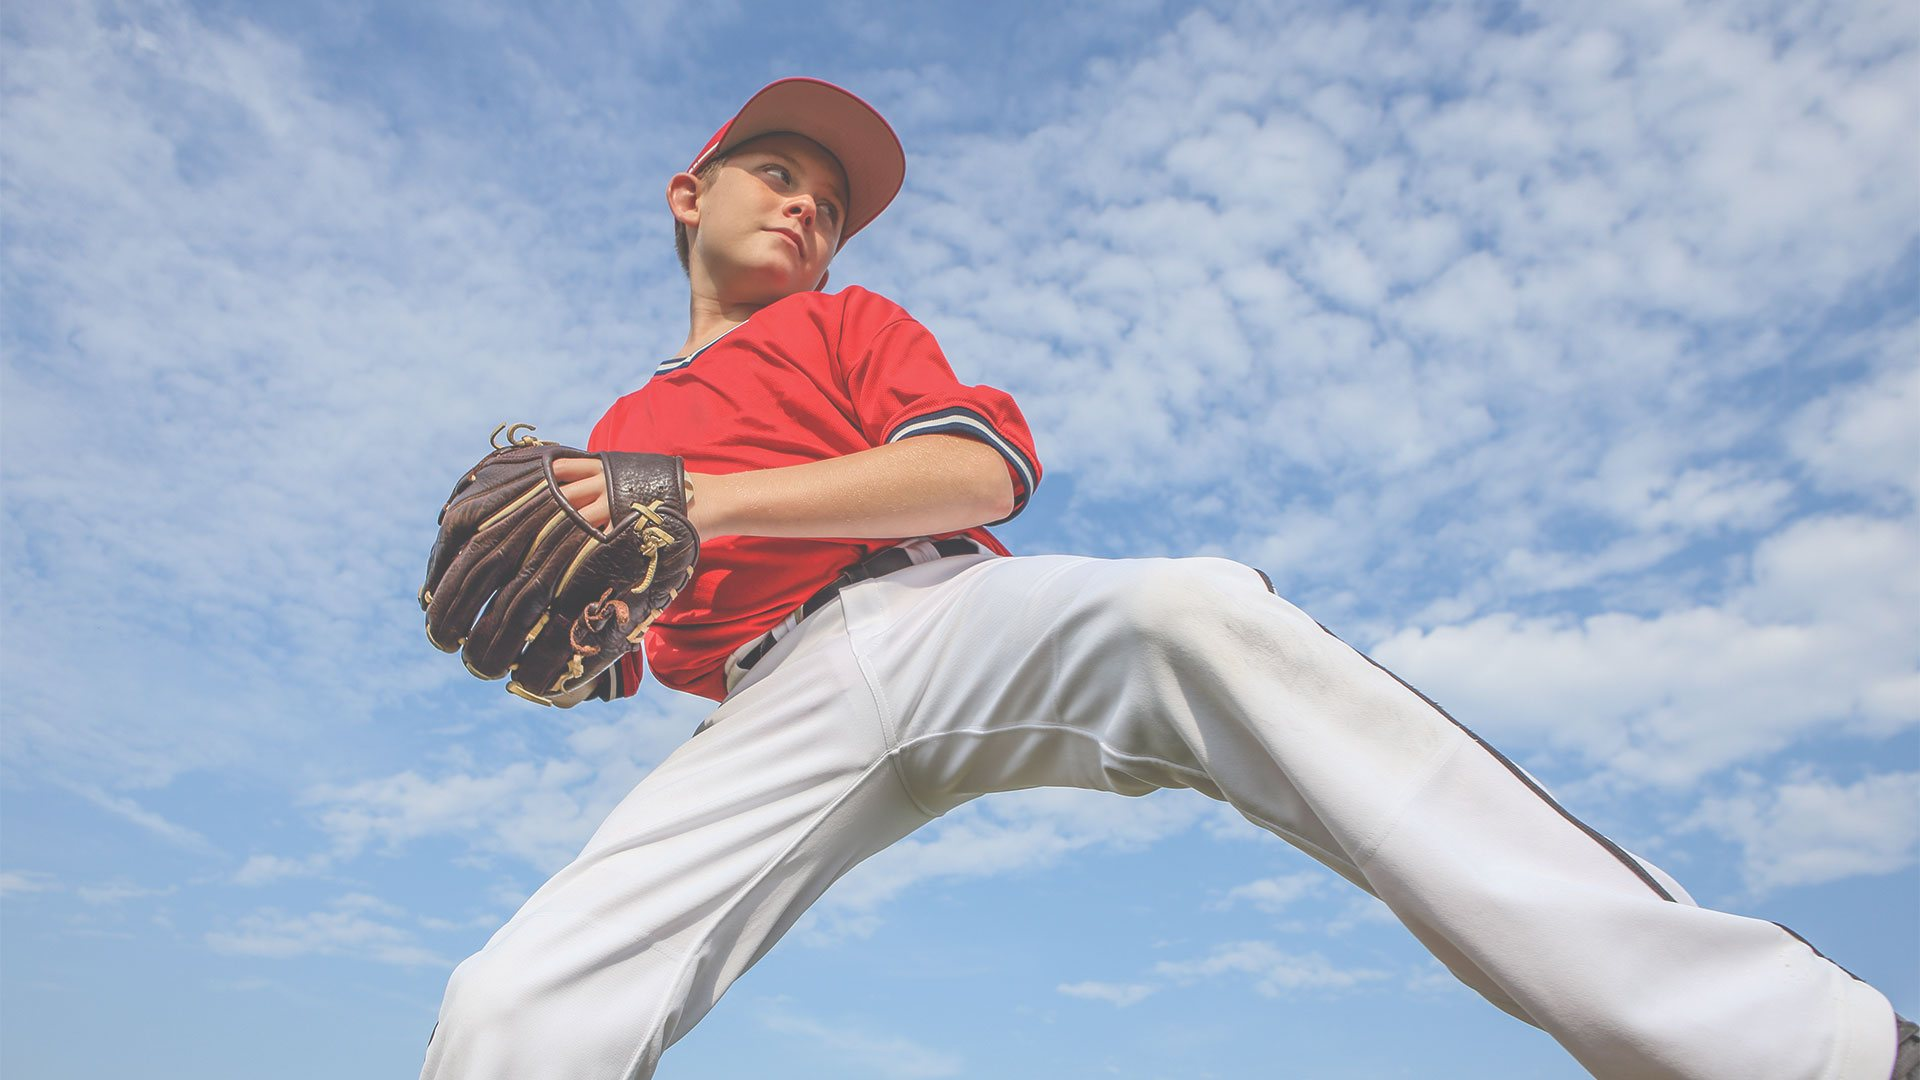 Youth baseball player pitching